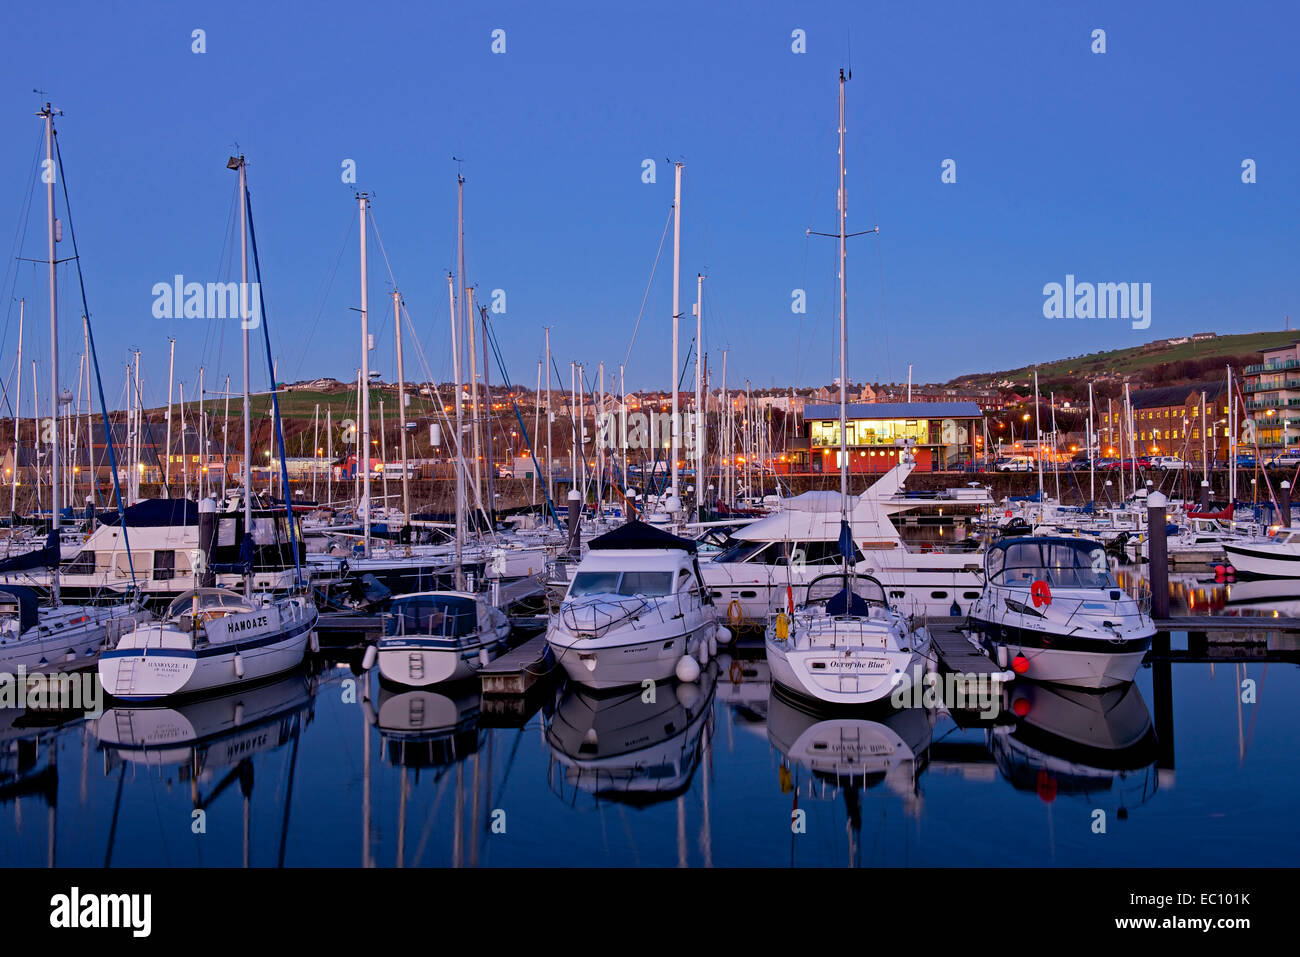 The marina, Whitehaven, West Cumbria, England UK - Stock Image